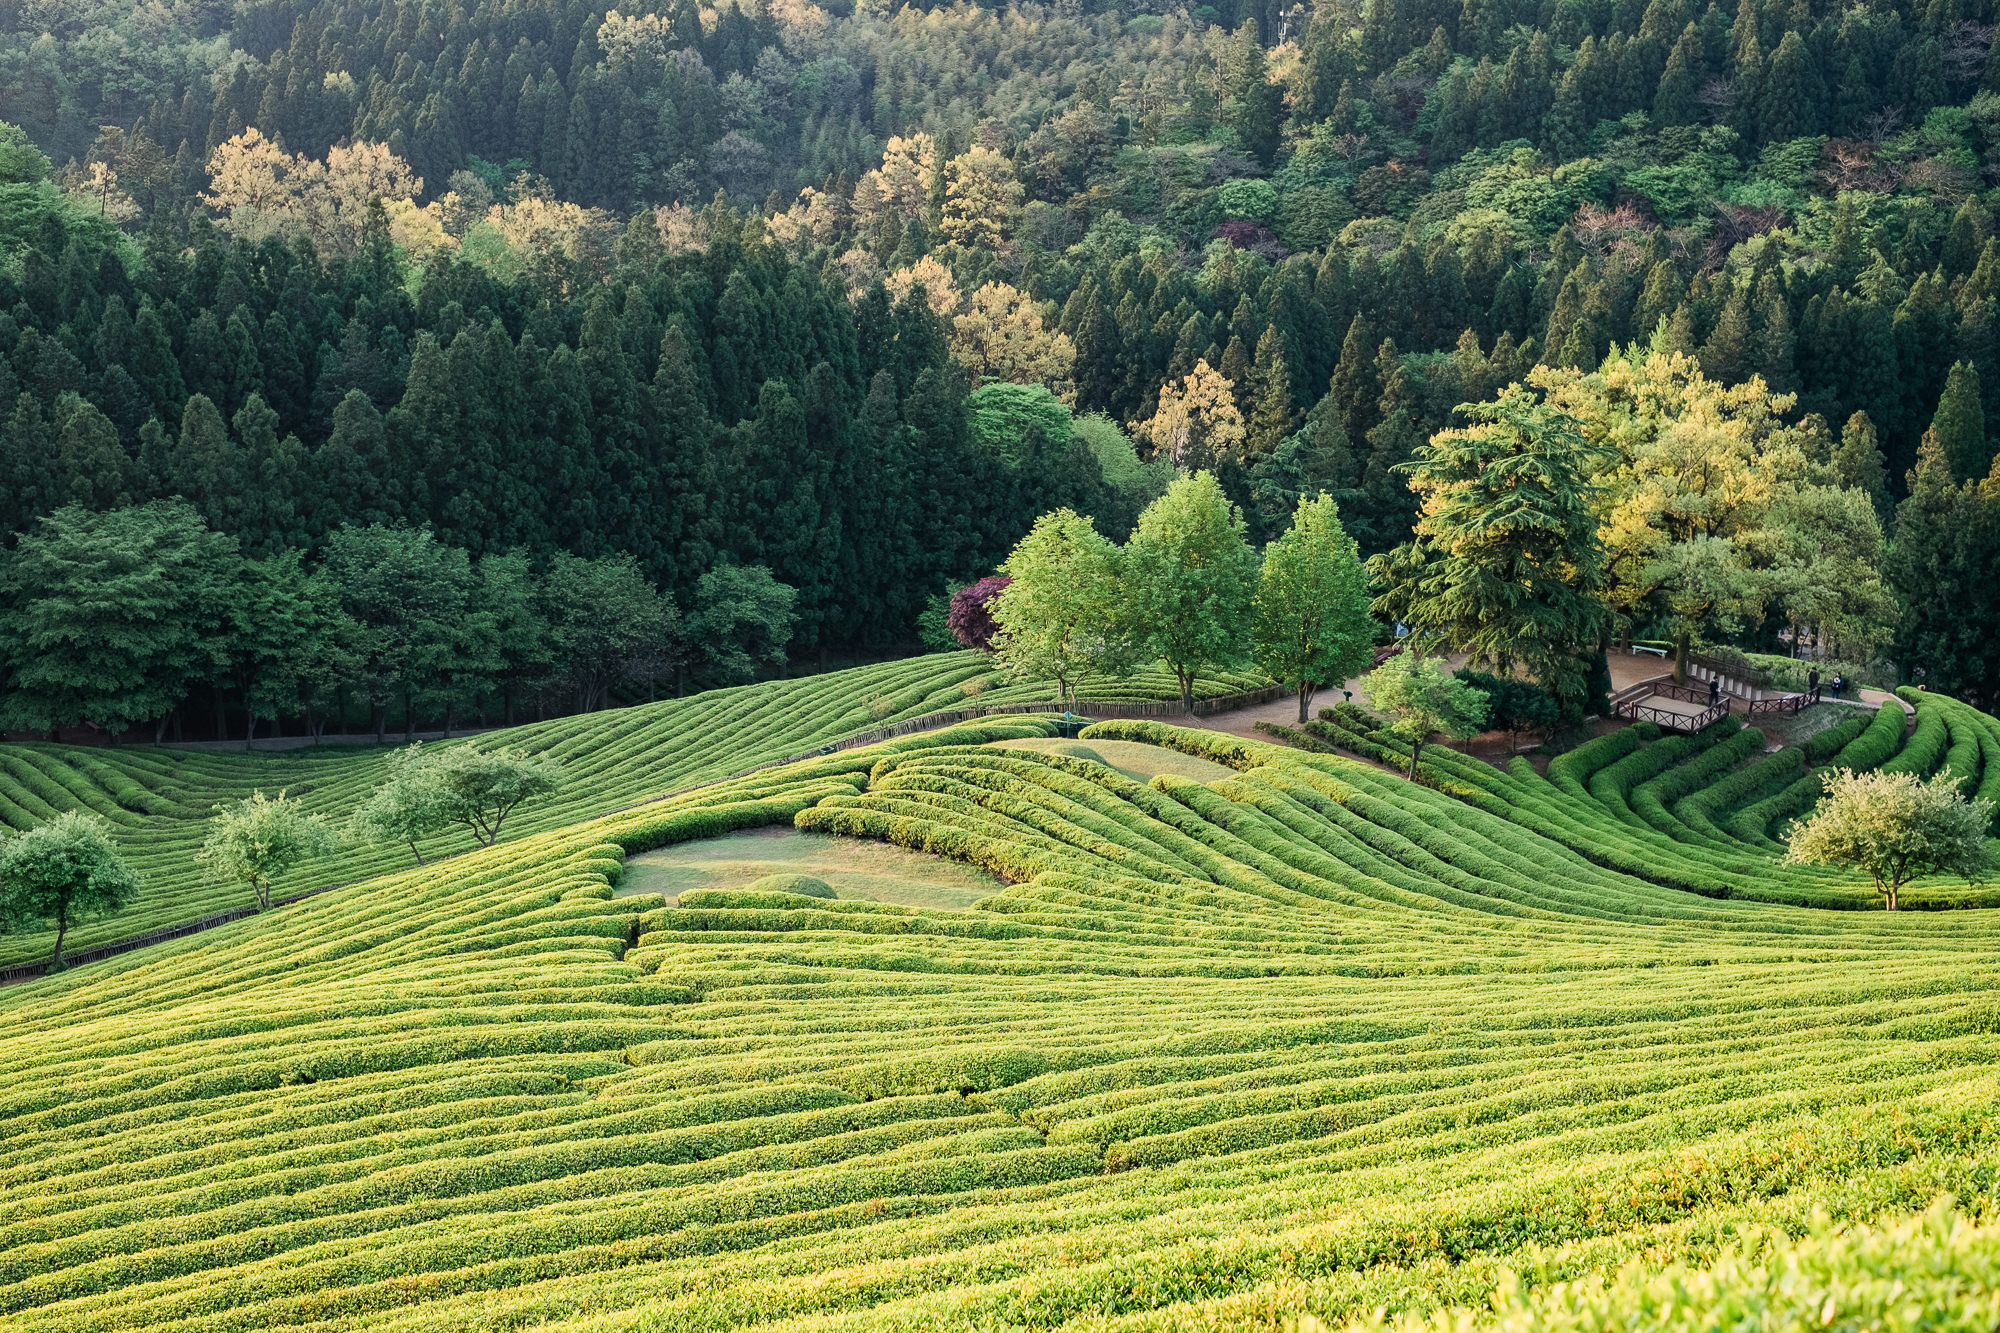 A beautiful sunrise overlooks the green tea fields in Boseong, South Korea.